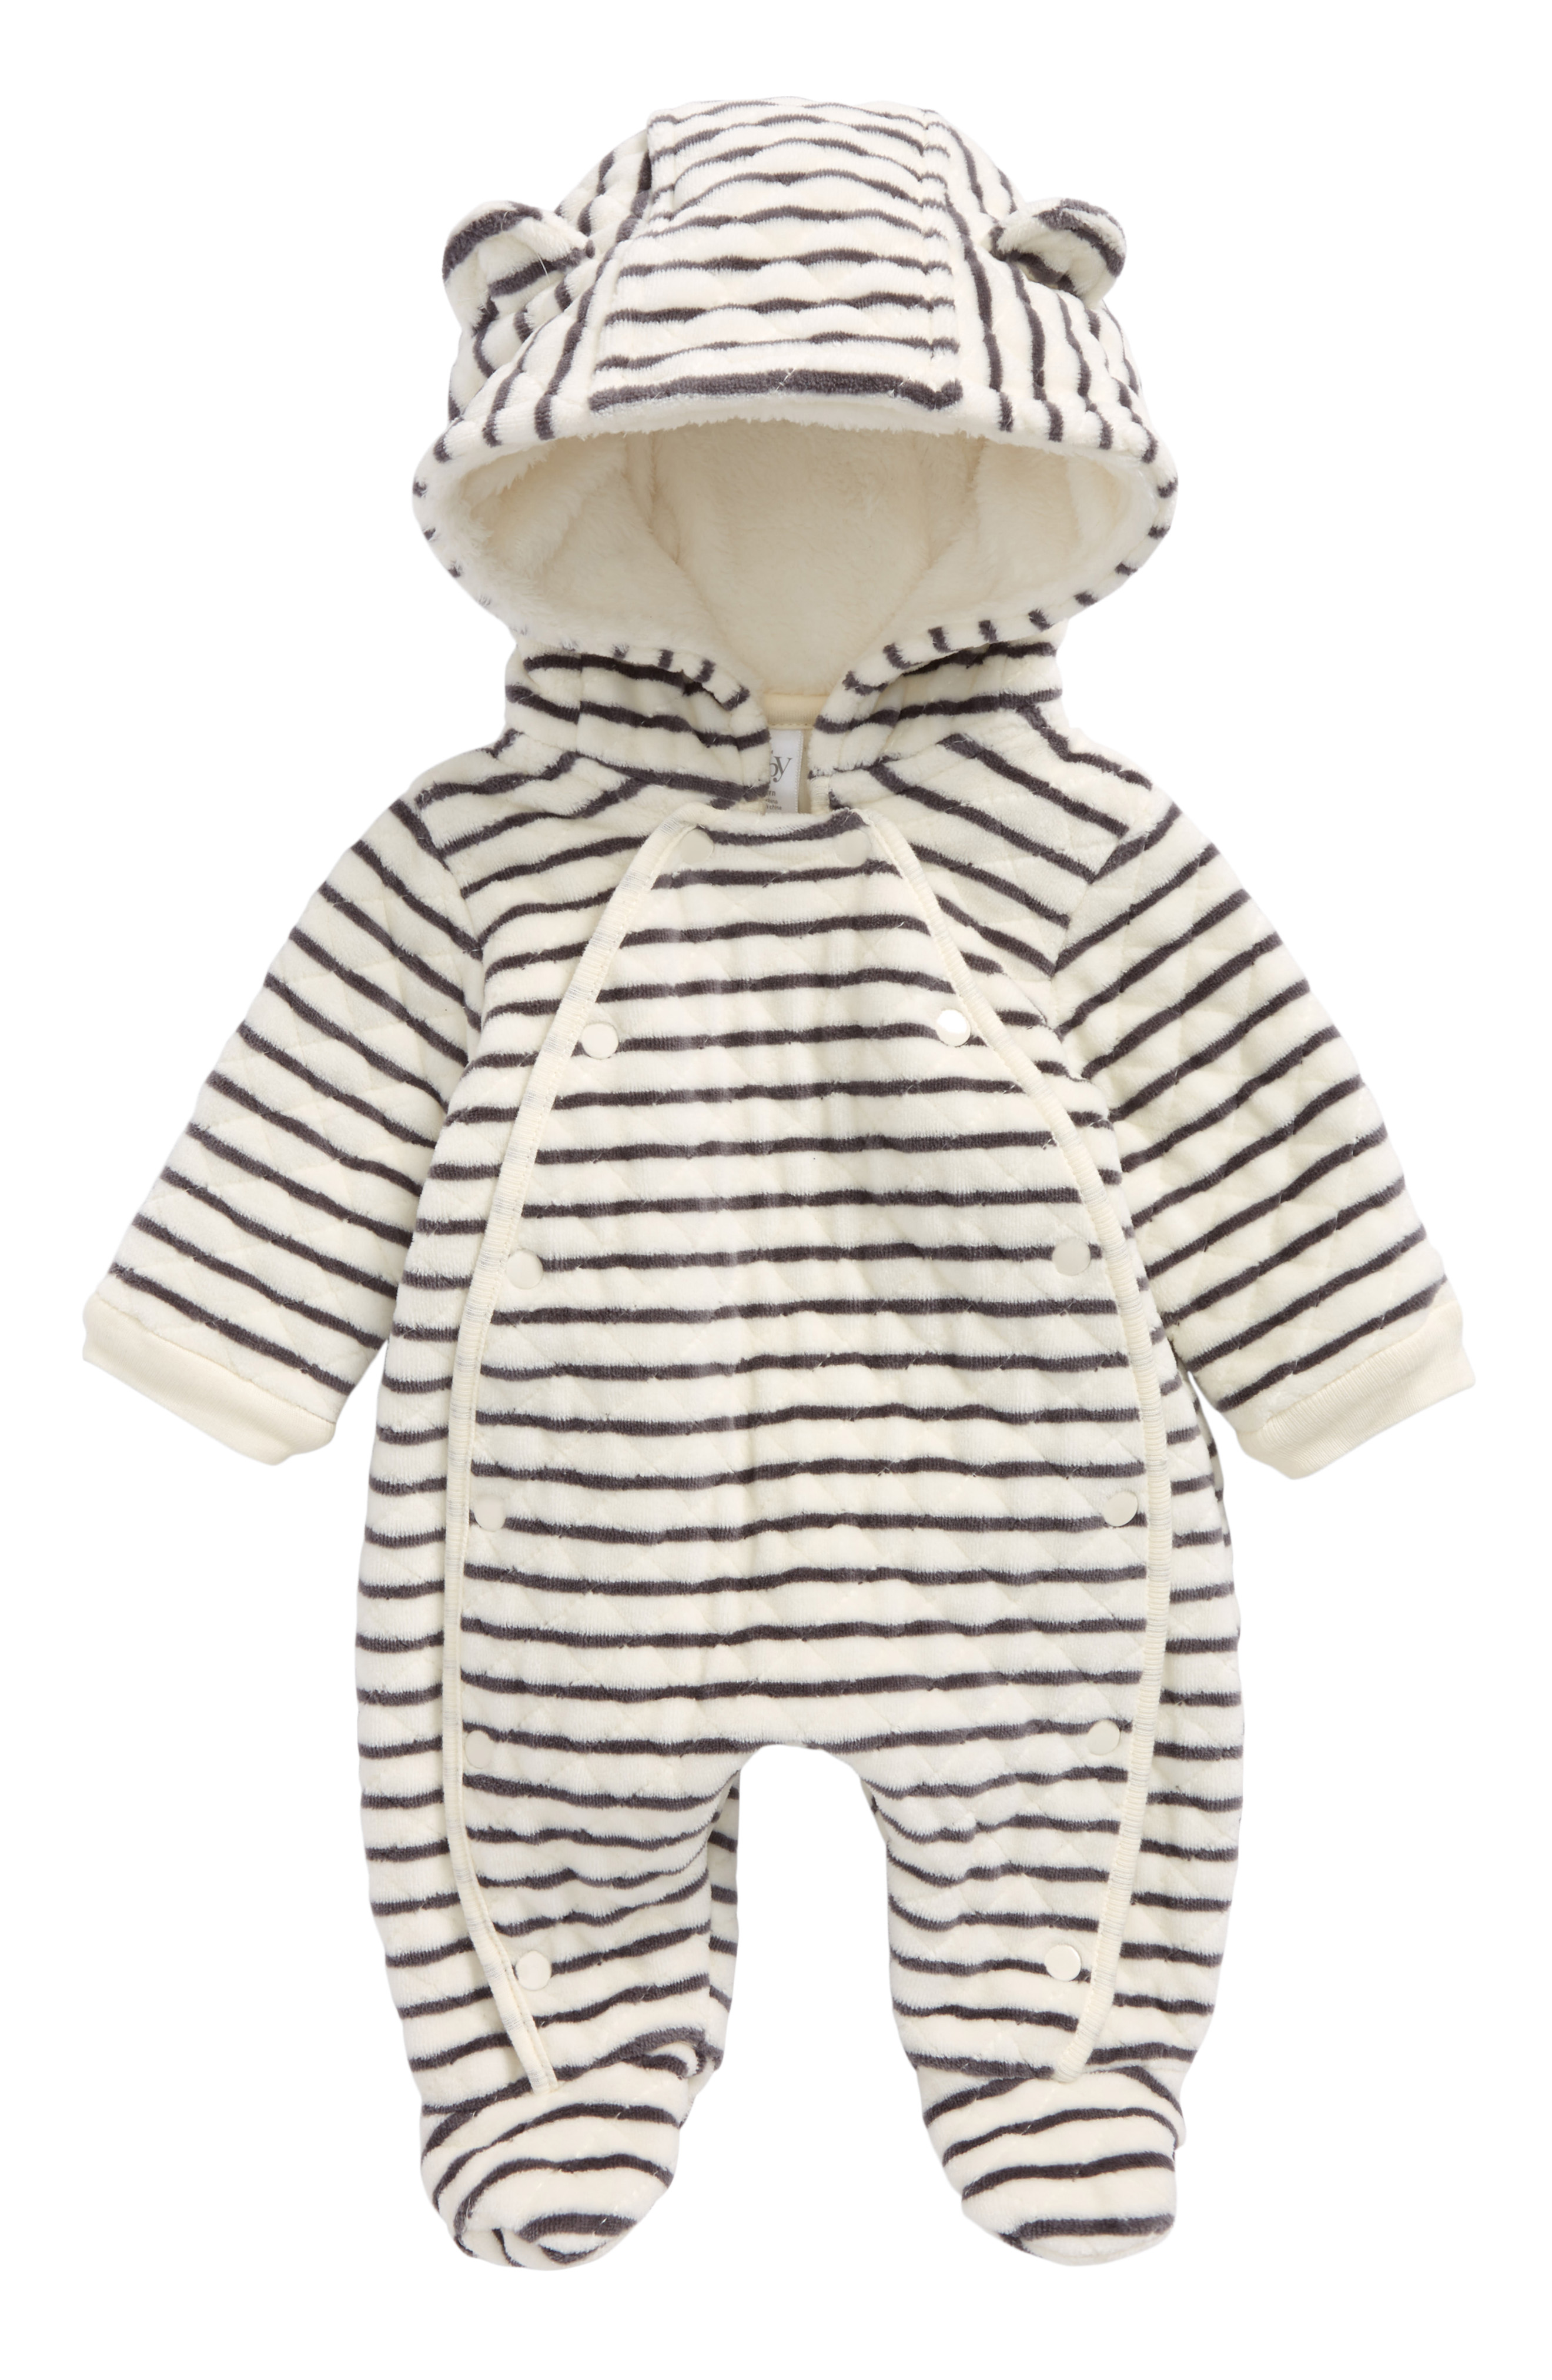 "How sweet is this{&nbsp;}<a  href=""https://www.nordstrom.com/s/tucker-tate-full-zip-hoodie-baby/5475624?origin=keywordsearch-personalizedsort&breadcrumb=Home%2FAll%20Results%2FKids%27%20Clothing&color=blue%20mazarine%20mini%20stripe"" target=""_blank"" title=""https://www.nordstrom.com/s/tucker-tate-full-zip-hoodie-baby/5475624?origin=keywordsearch-personalizedsort&breadcrumb=Home%2FAll%20Results%2FKids%27%20Clothing&color=blue%20mazarine%20mini%20stripe"">Nordstrom Stripe Hoodie Bunting</a>{&nbsp;}for baby. $29.90 (after sale $45) (Image: Nordstrom)"